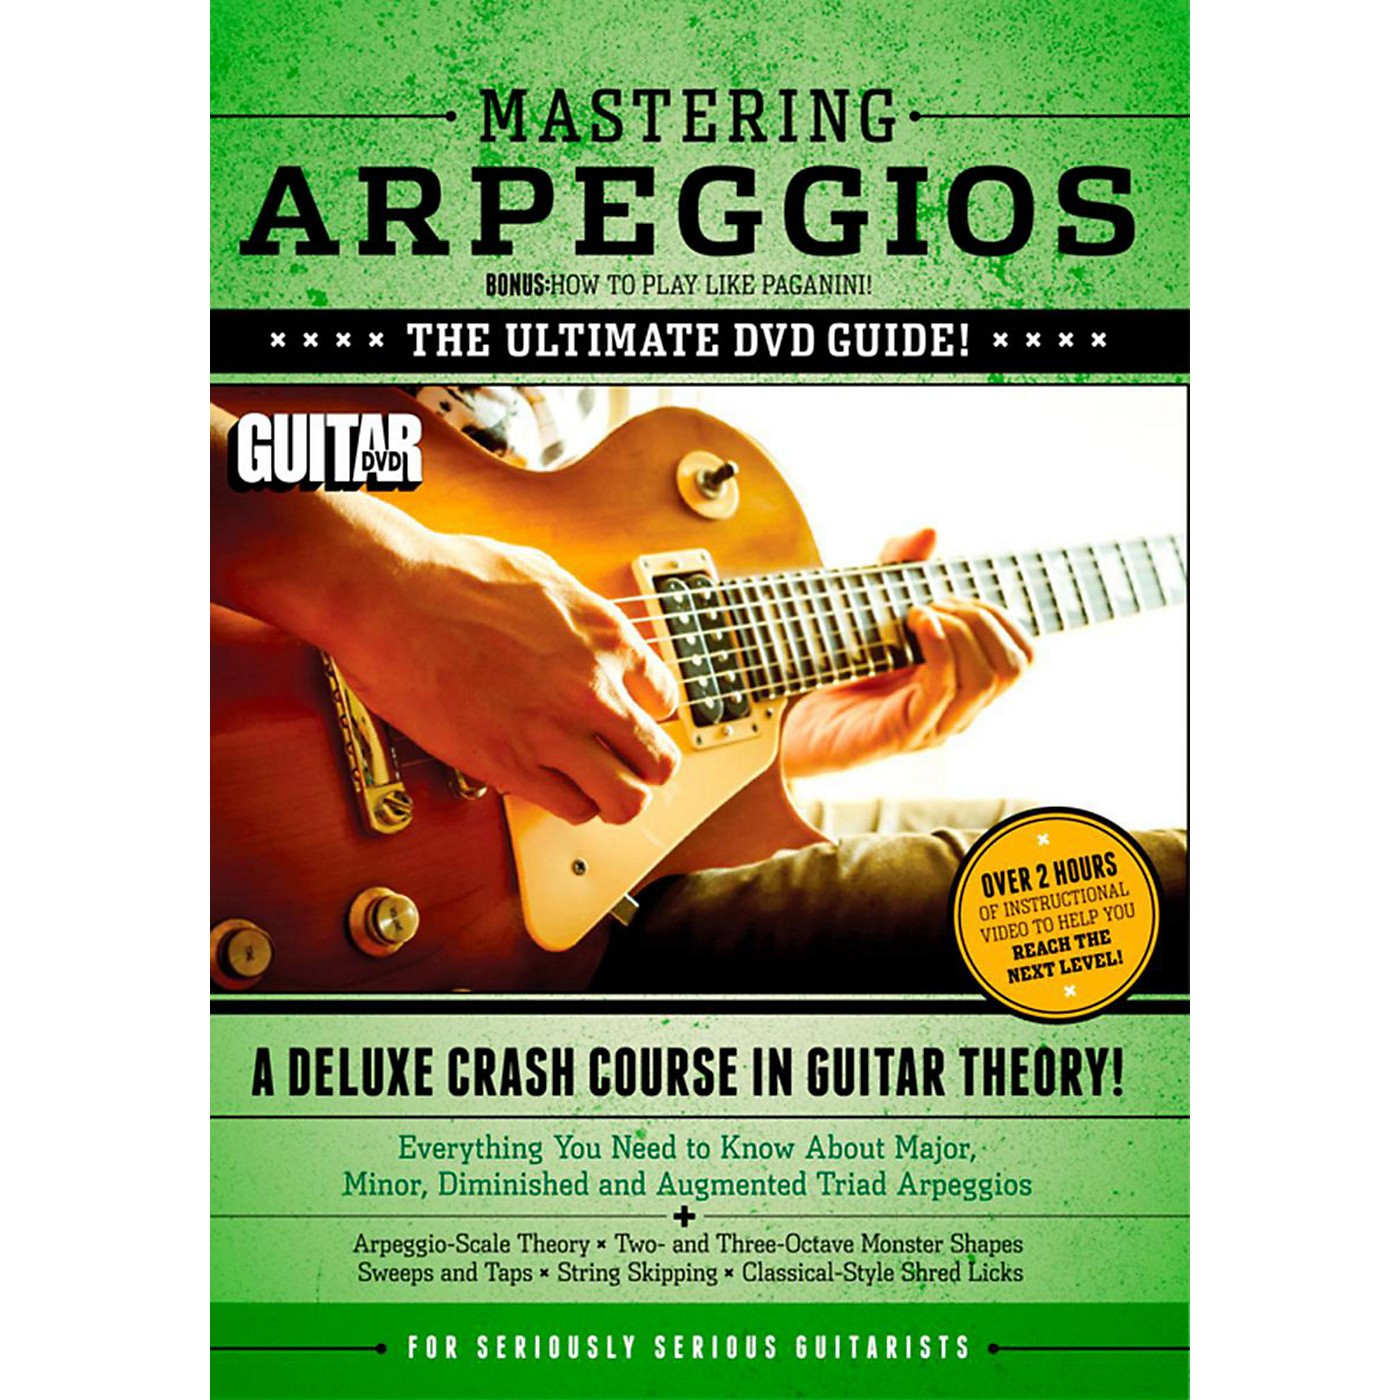 Alfred Guitar World Mastering Arpeggios Deluxe:  A Crash Course in Guitar Theory DVD thumbnail